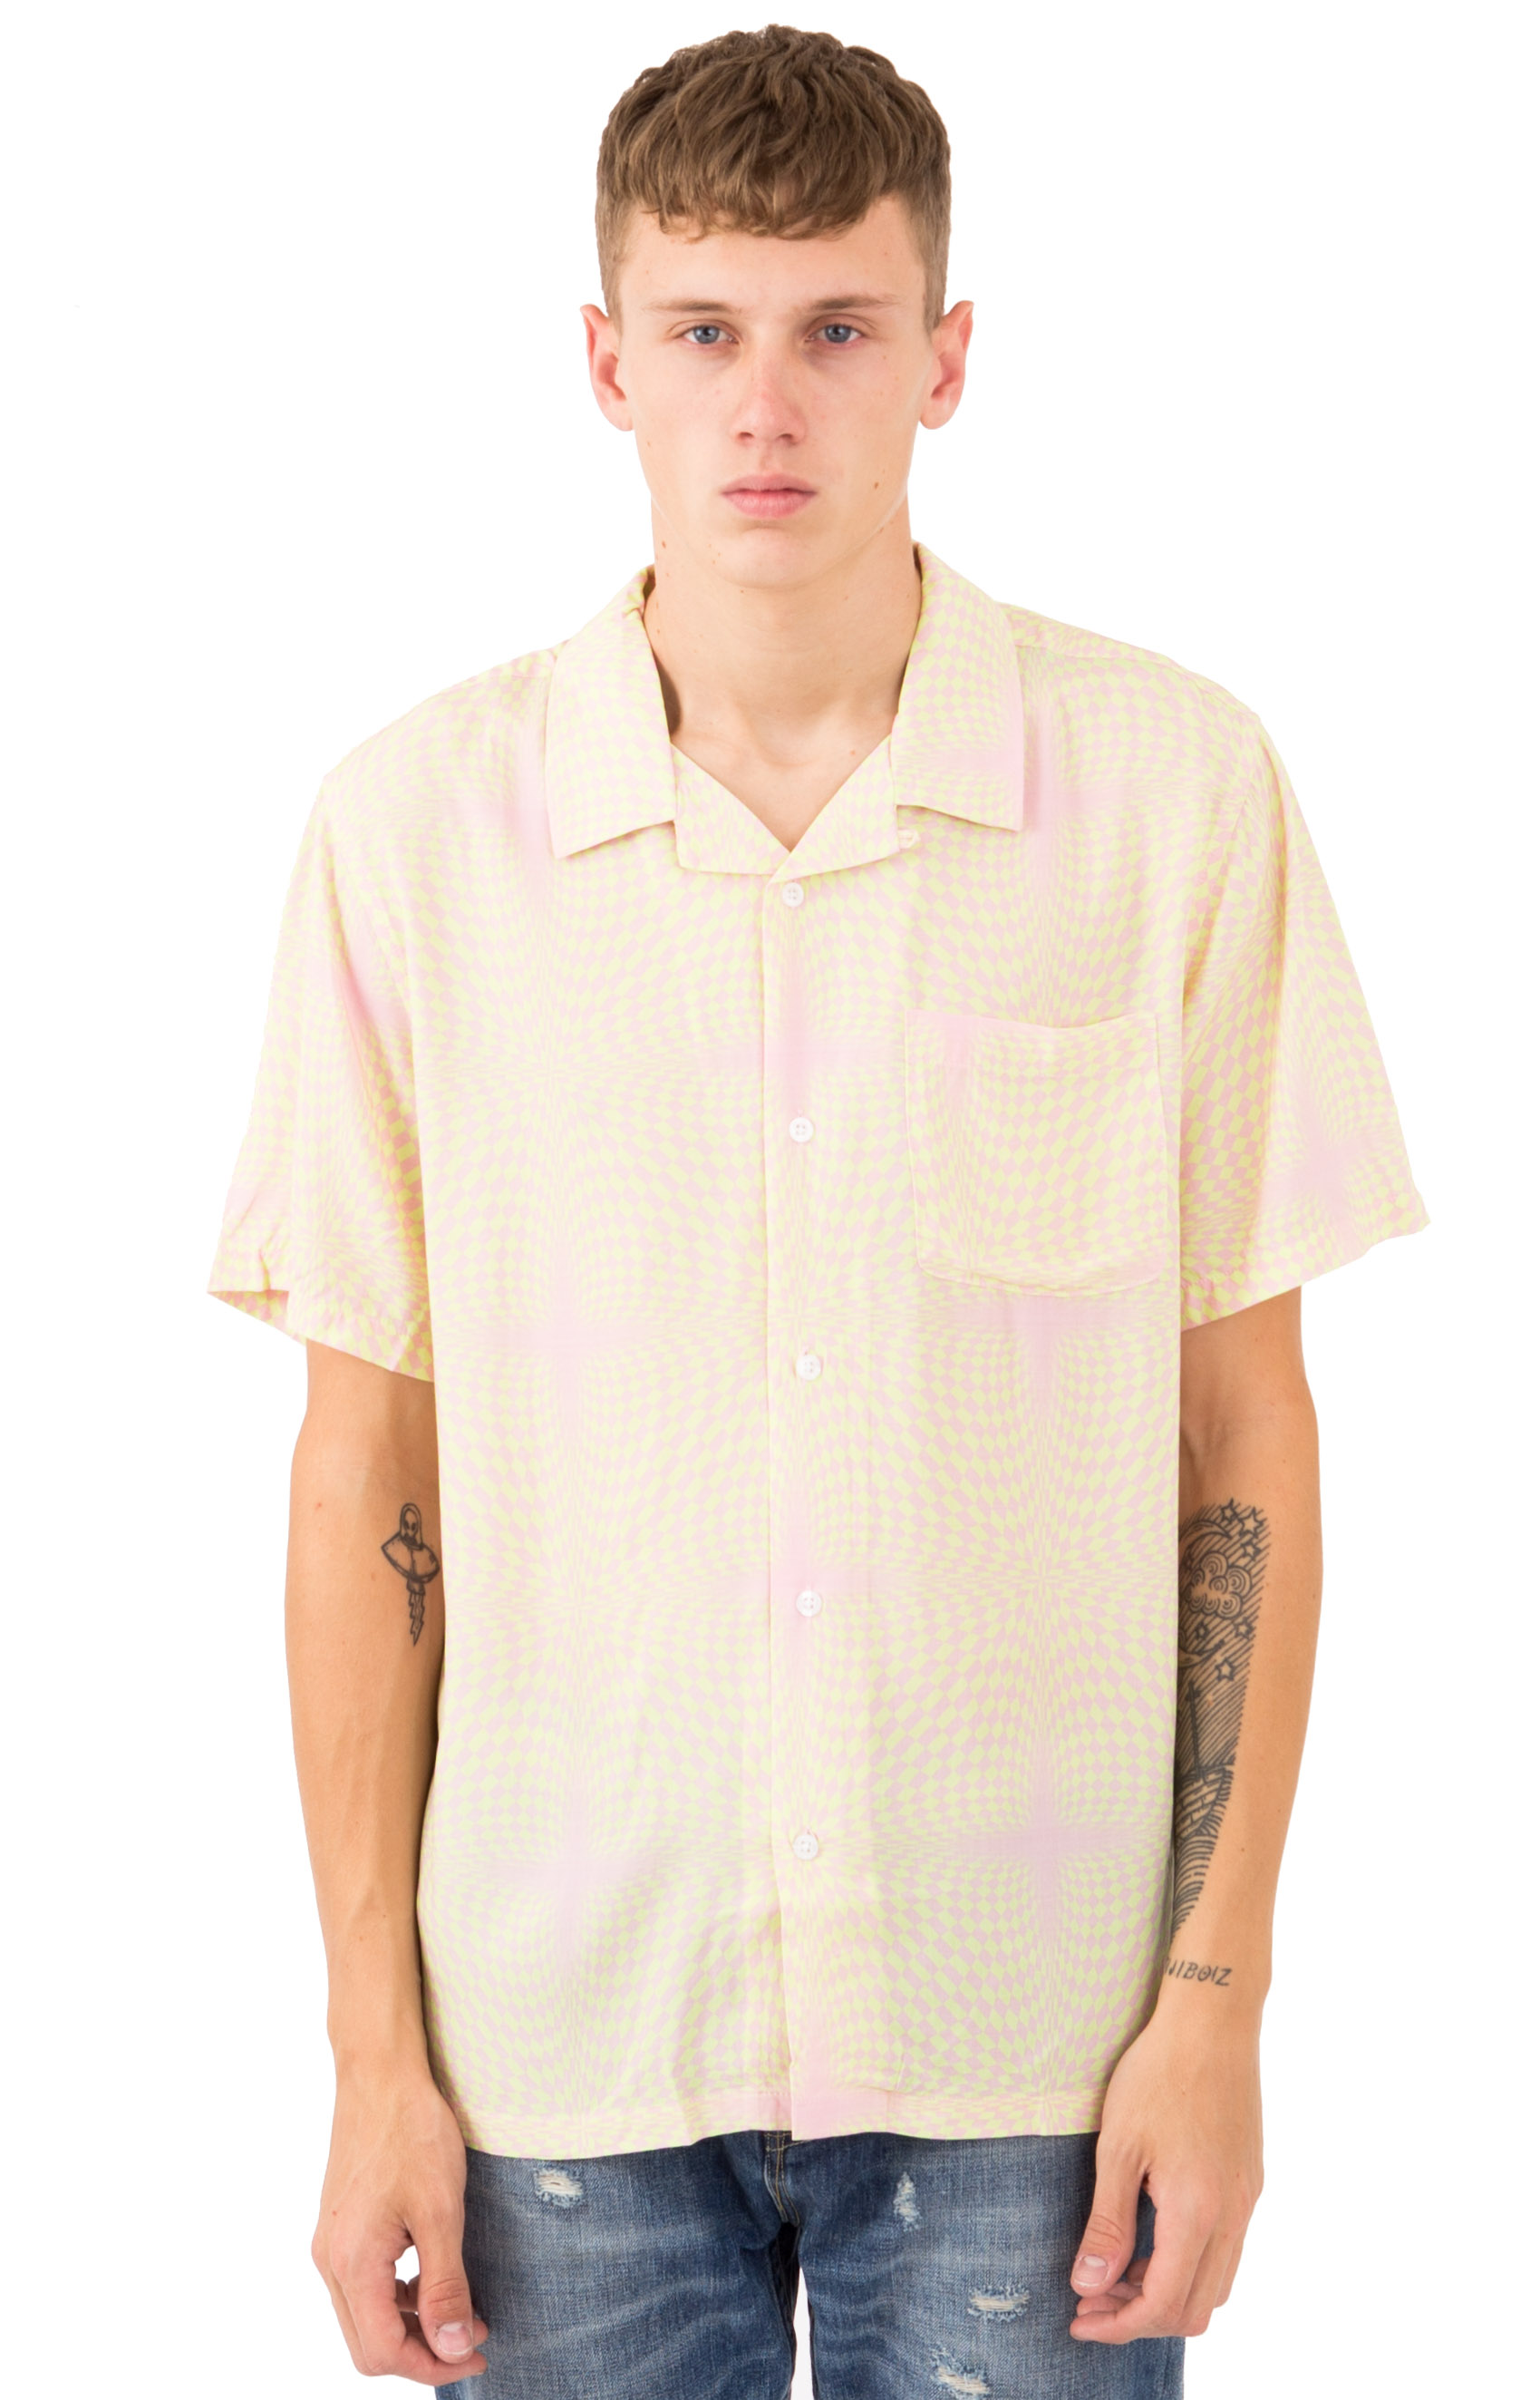 Psychedelic Checker Button-Up Shirt - Peach